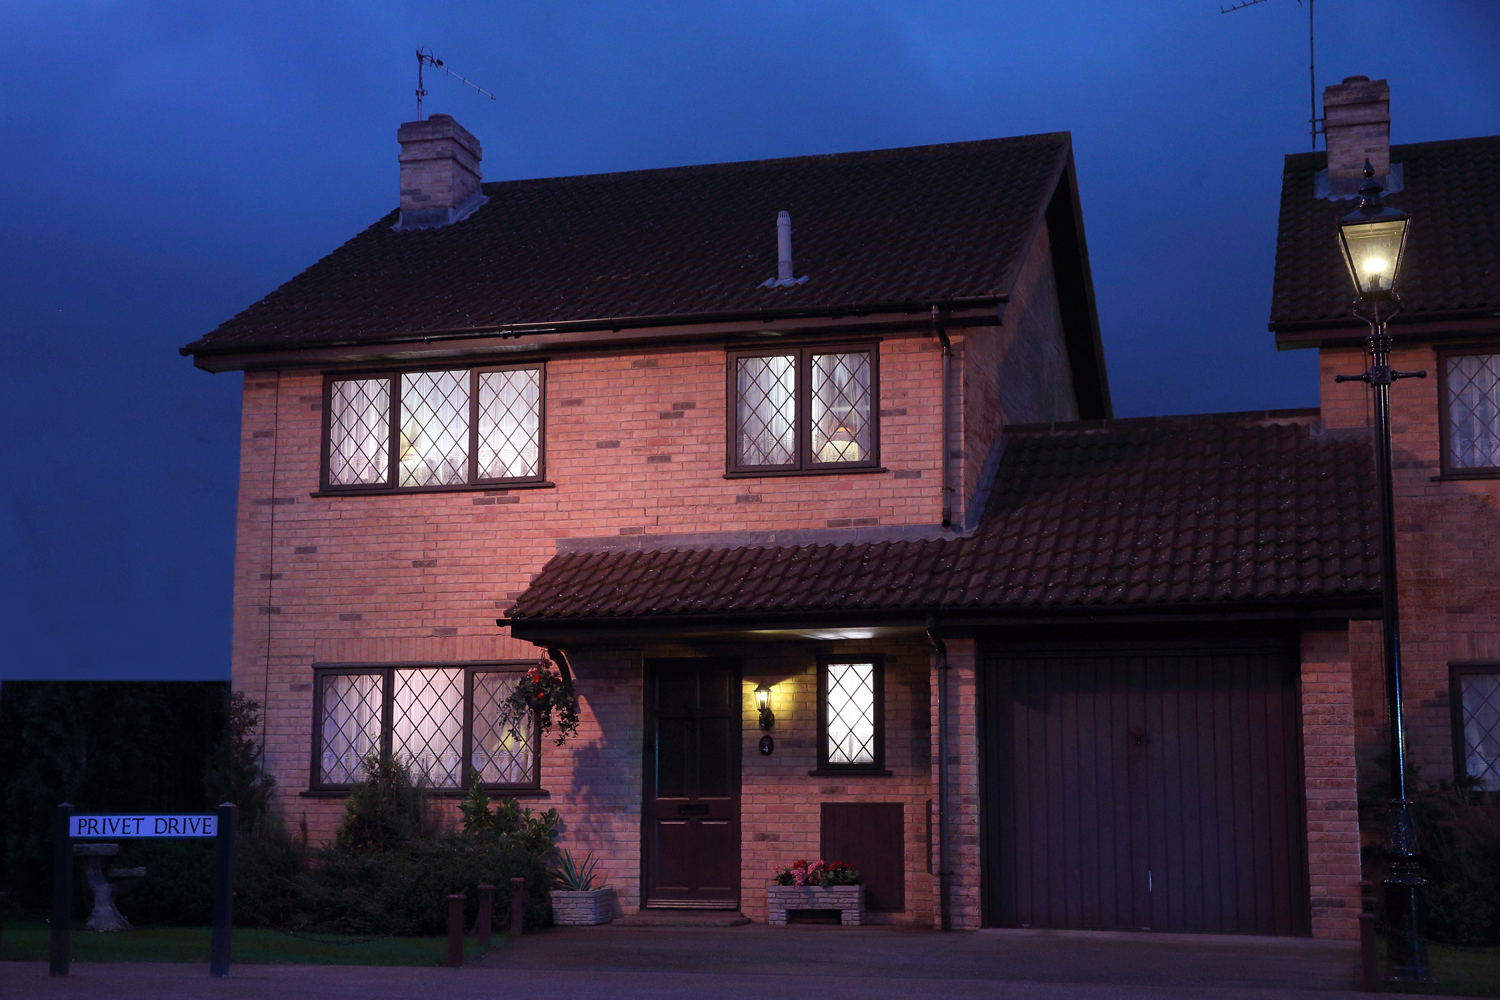 Harry Potter fans can visit the Dursleys house for the